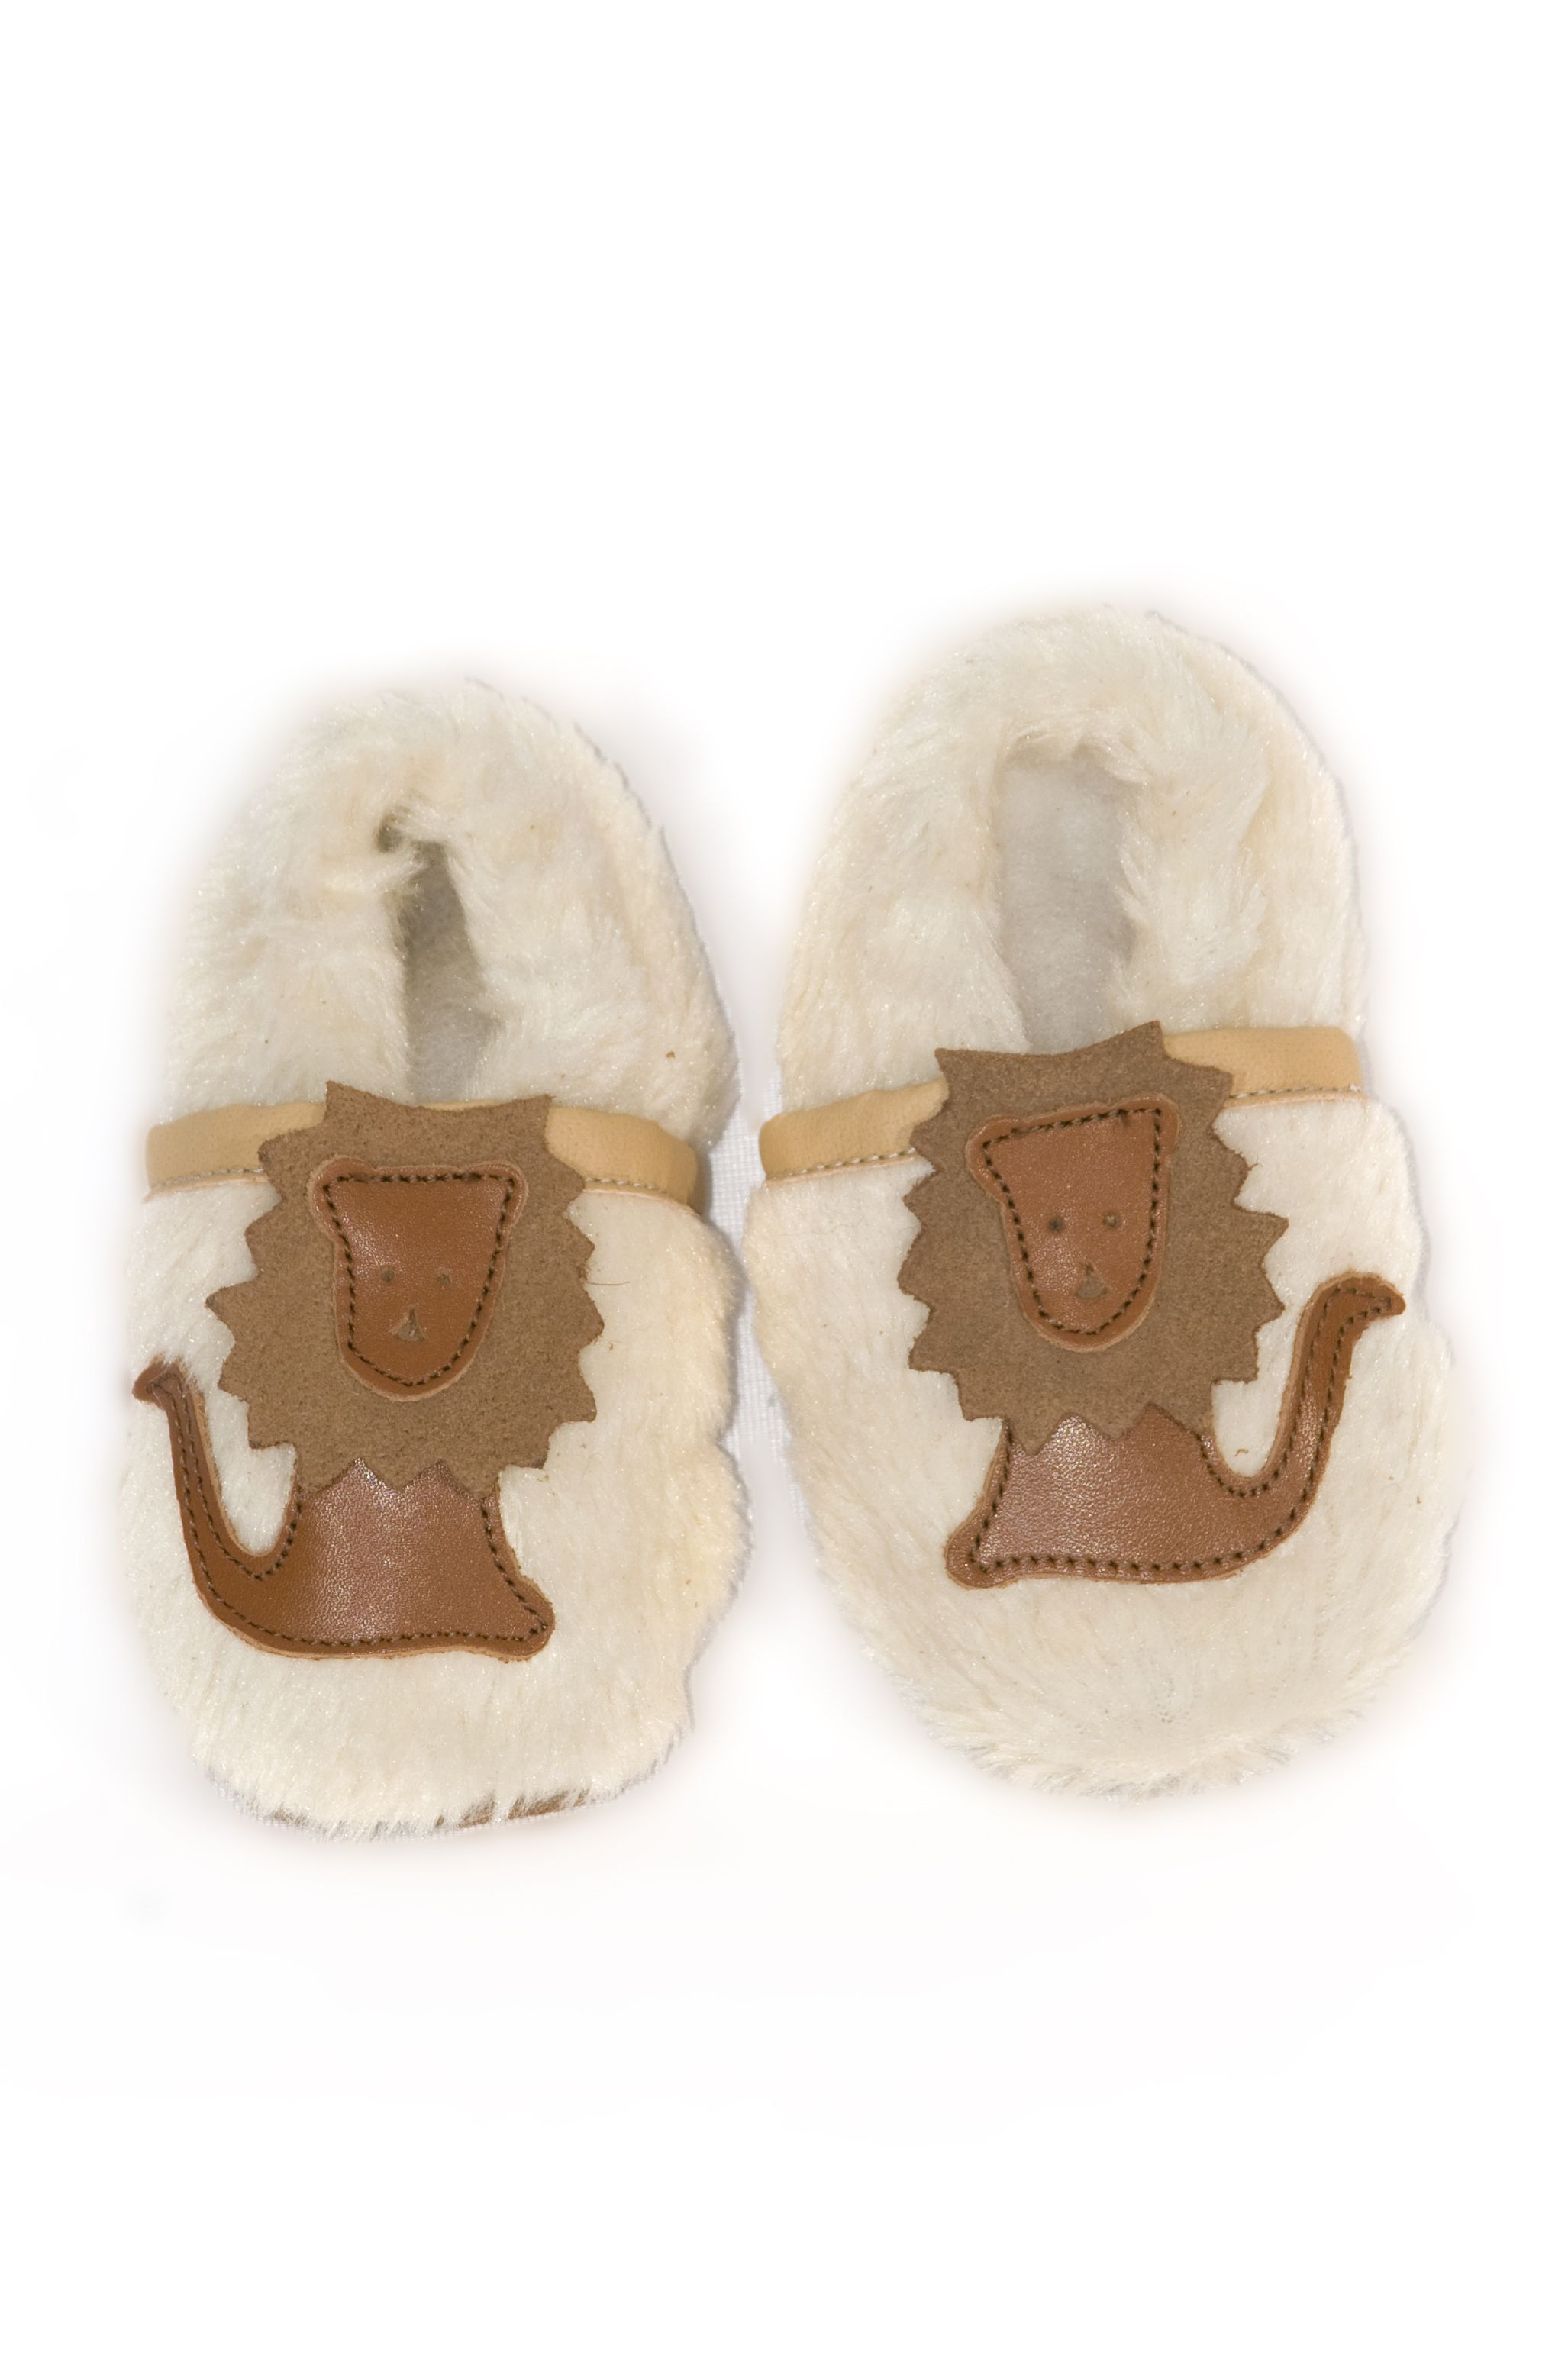 time to keep those precious little feet warm with African Footprints